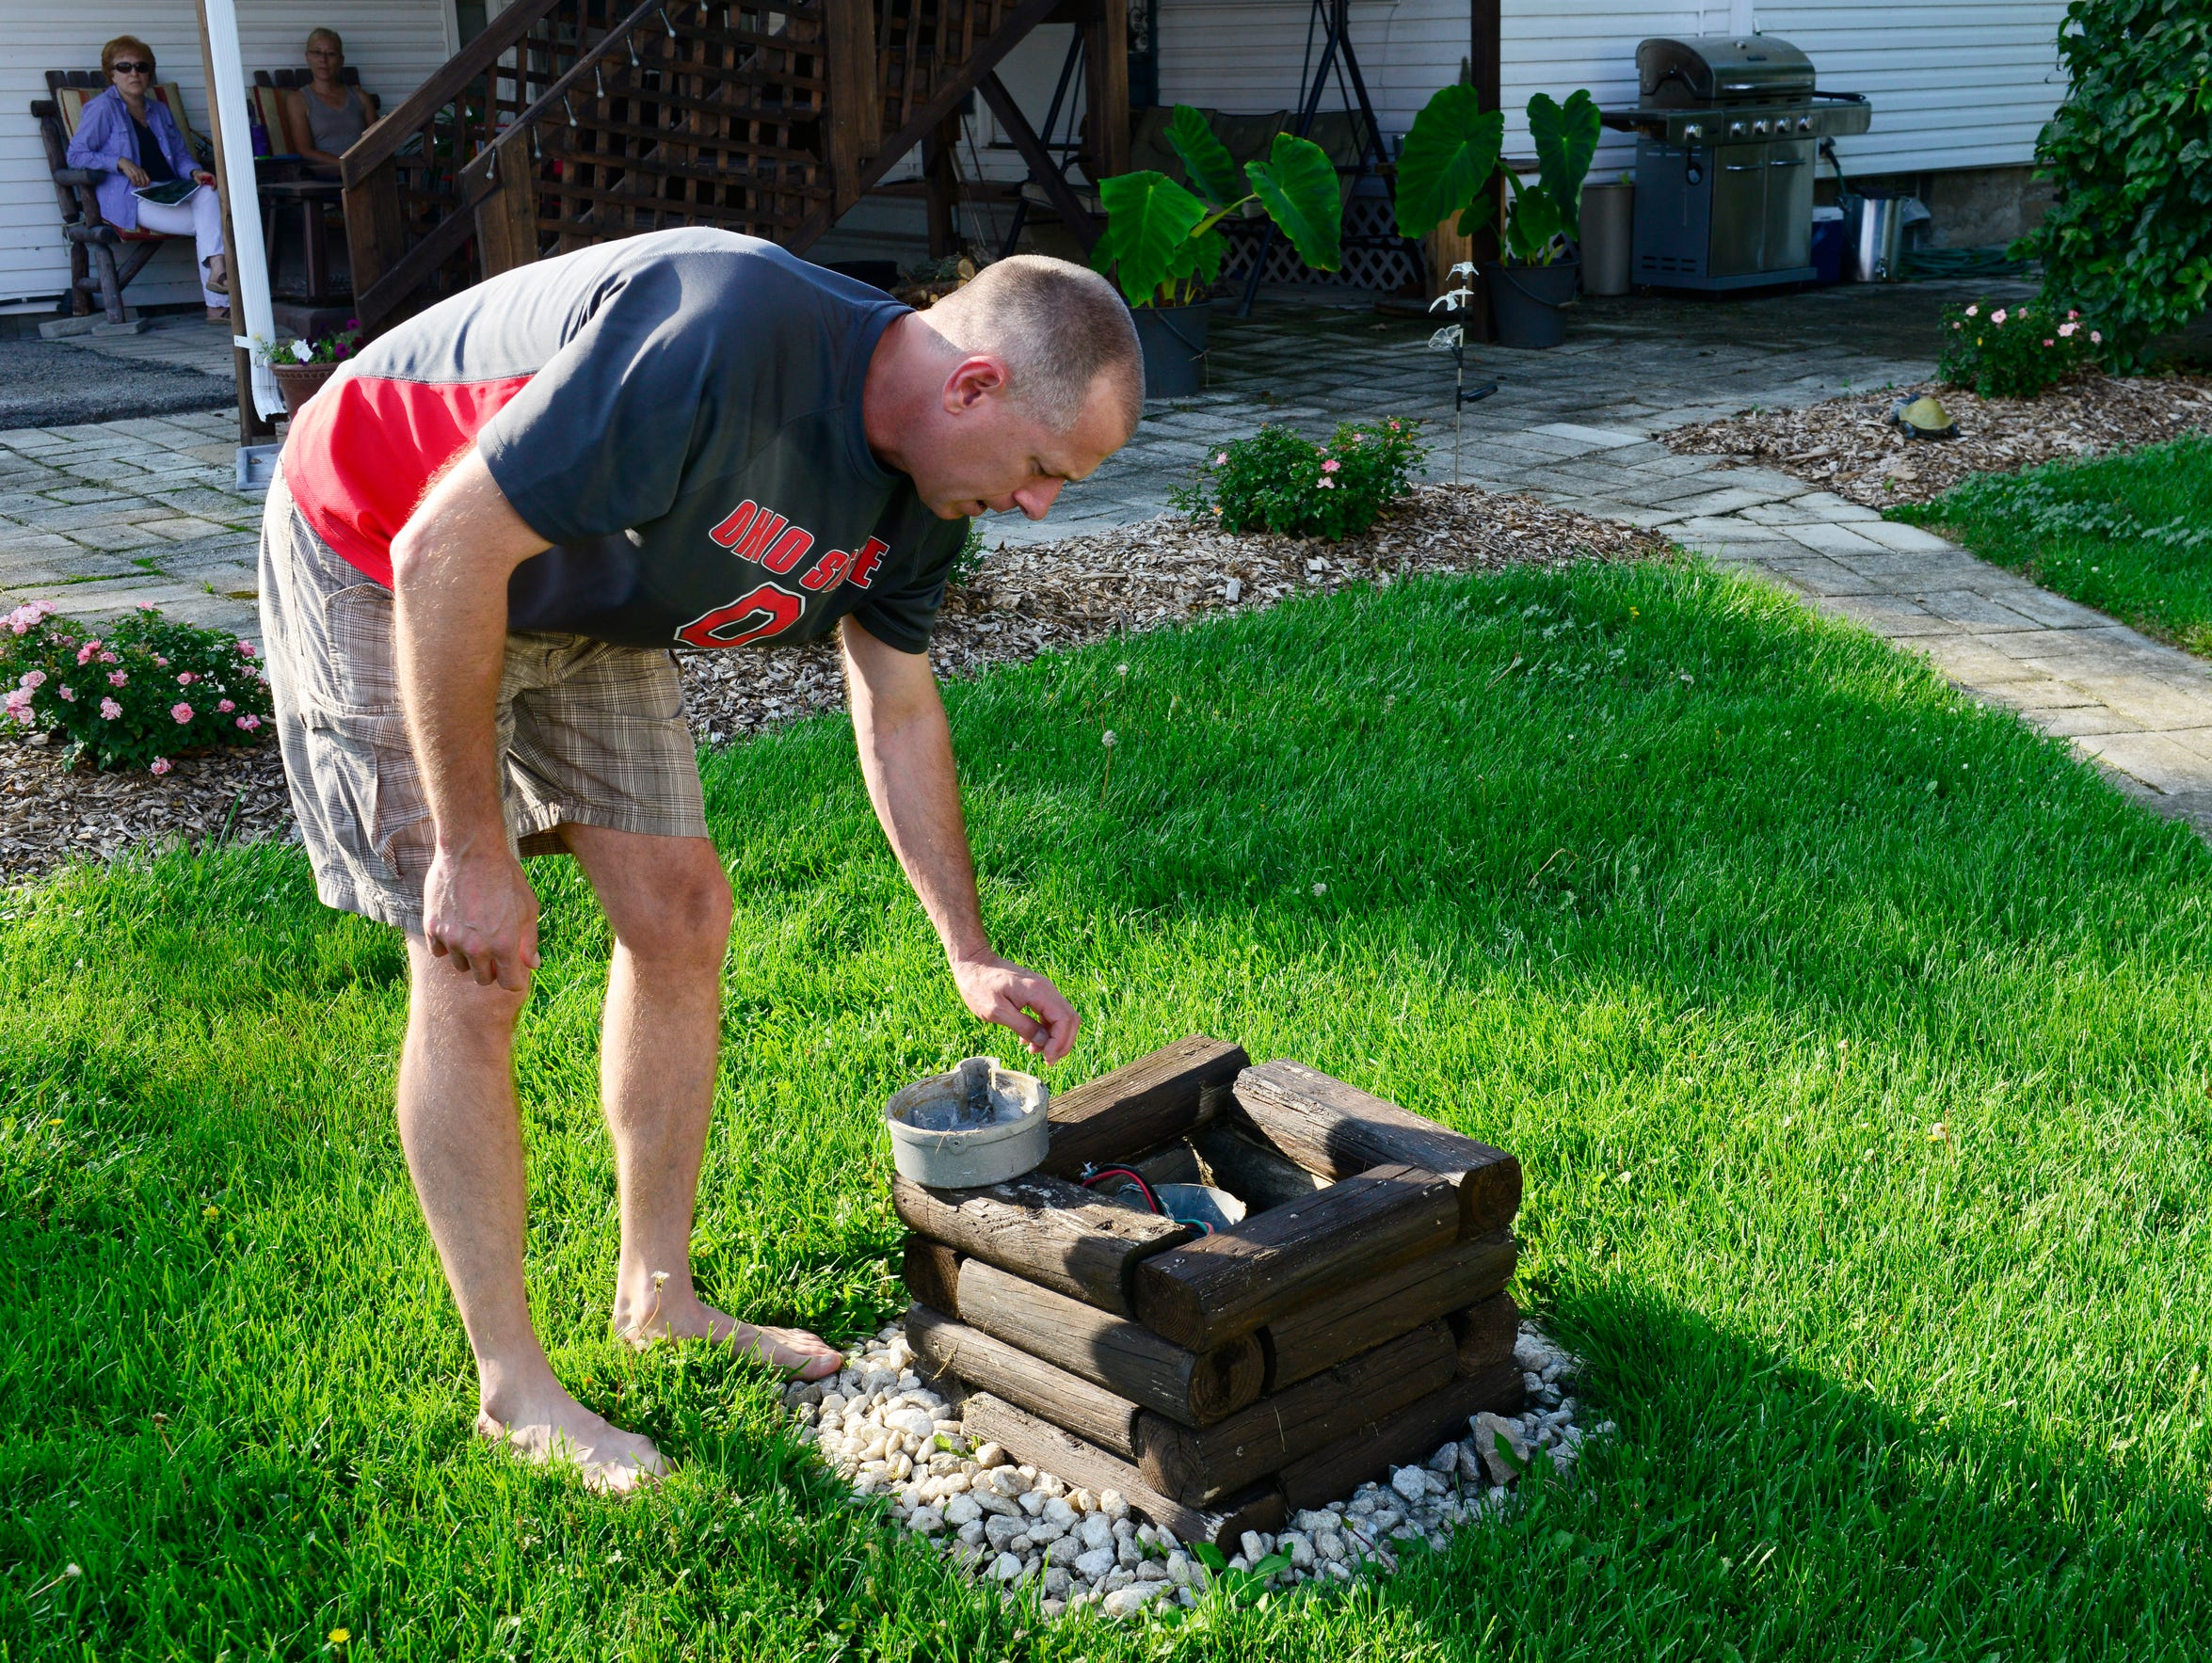 Rich Herrig draws water from a well in his backyard